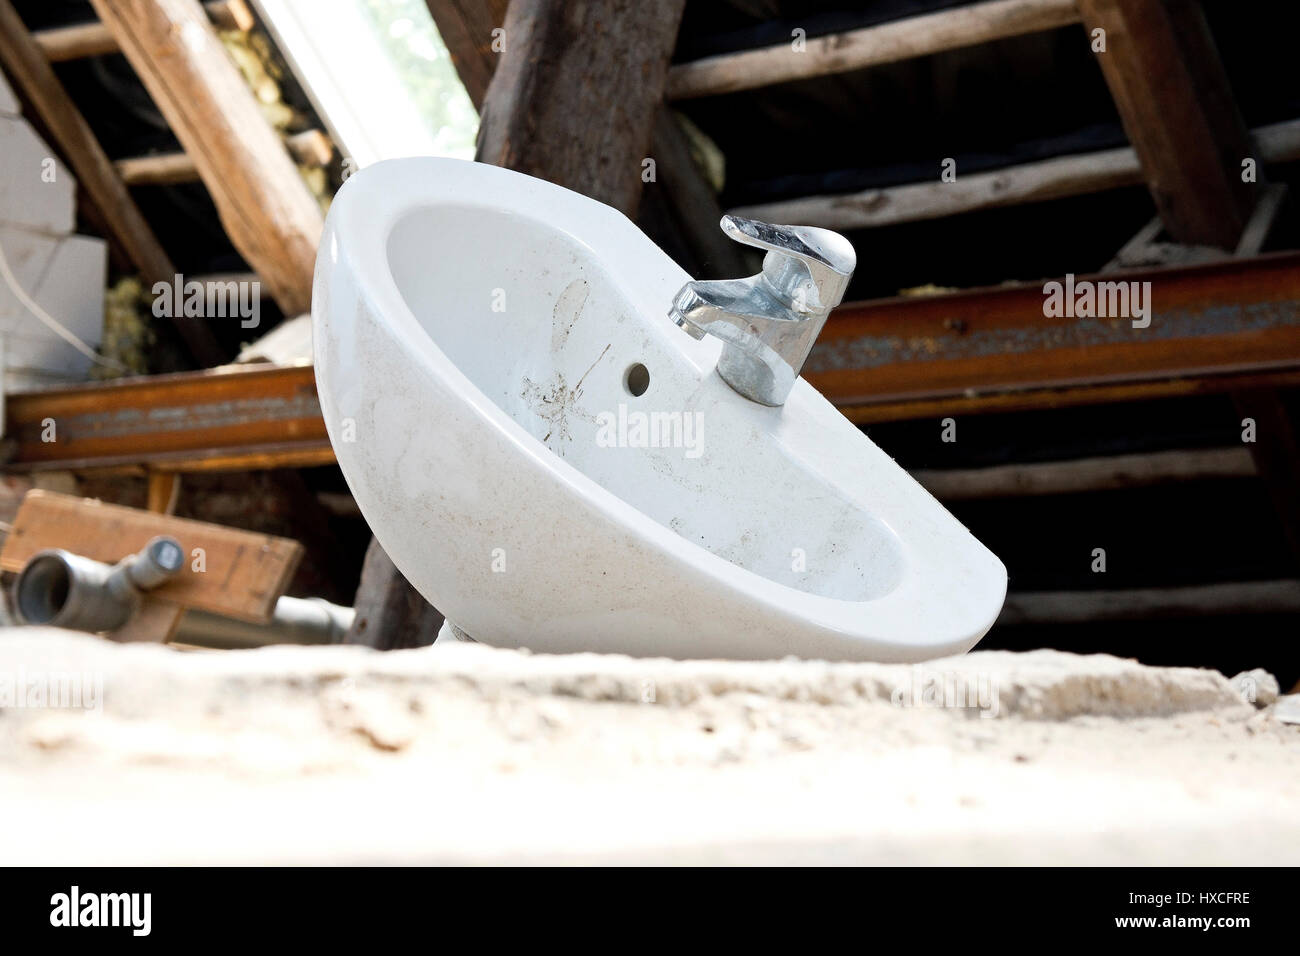 A wash basin with tap on the floor in a demolition house, A sink with faucet on the floor in a demolition house - Stock Image